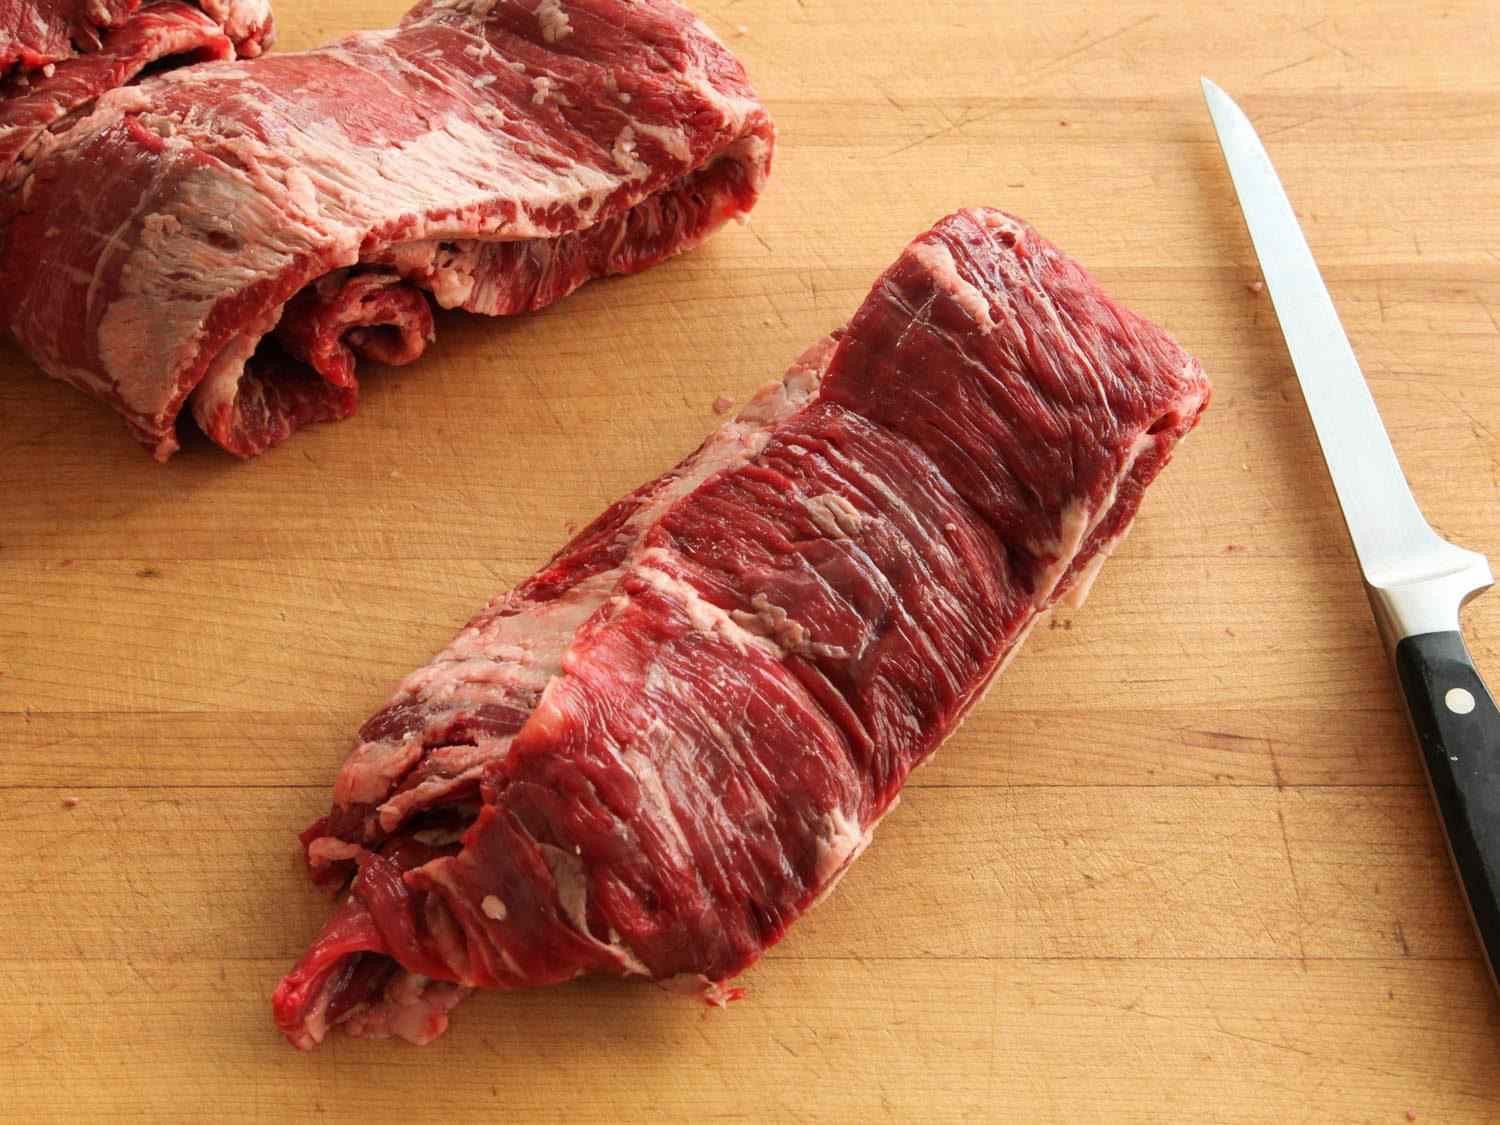 Skirt steak on a wooden cutting board next to a knife.